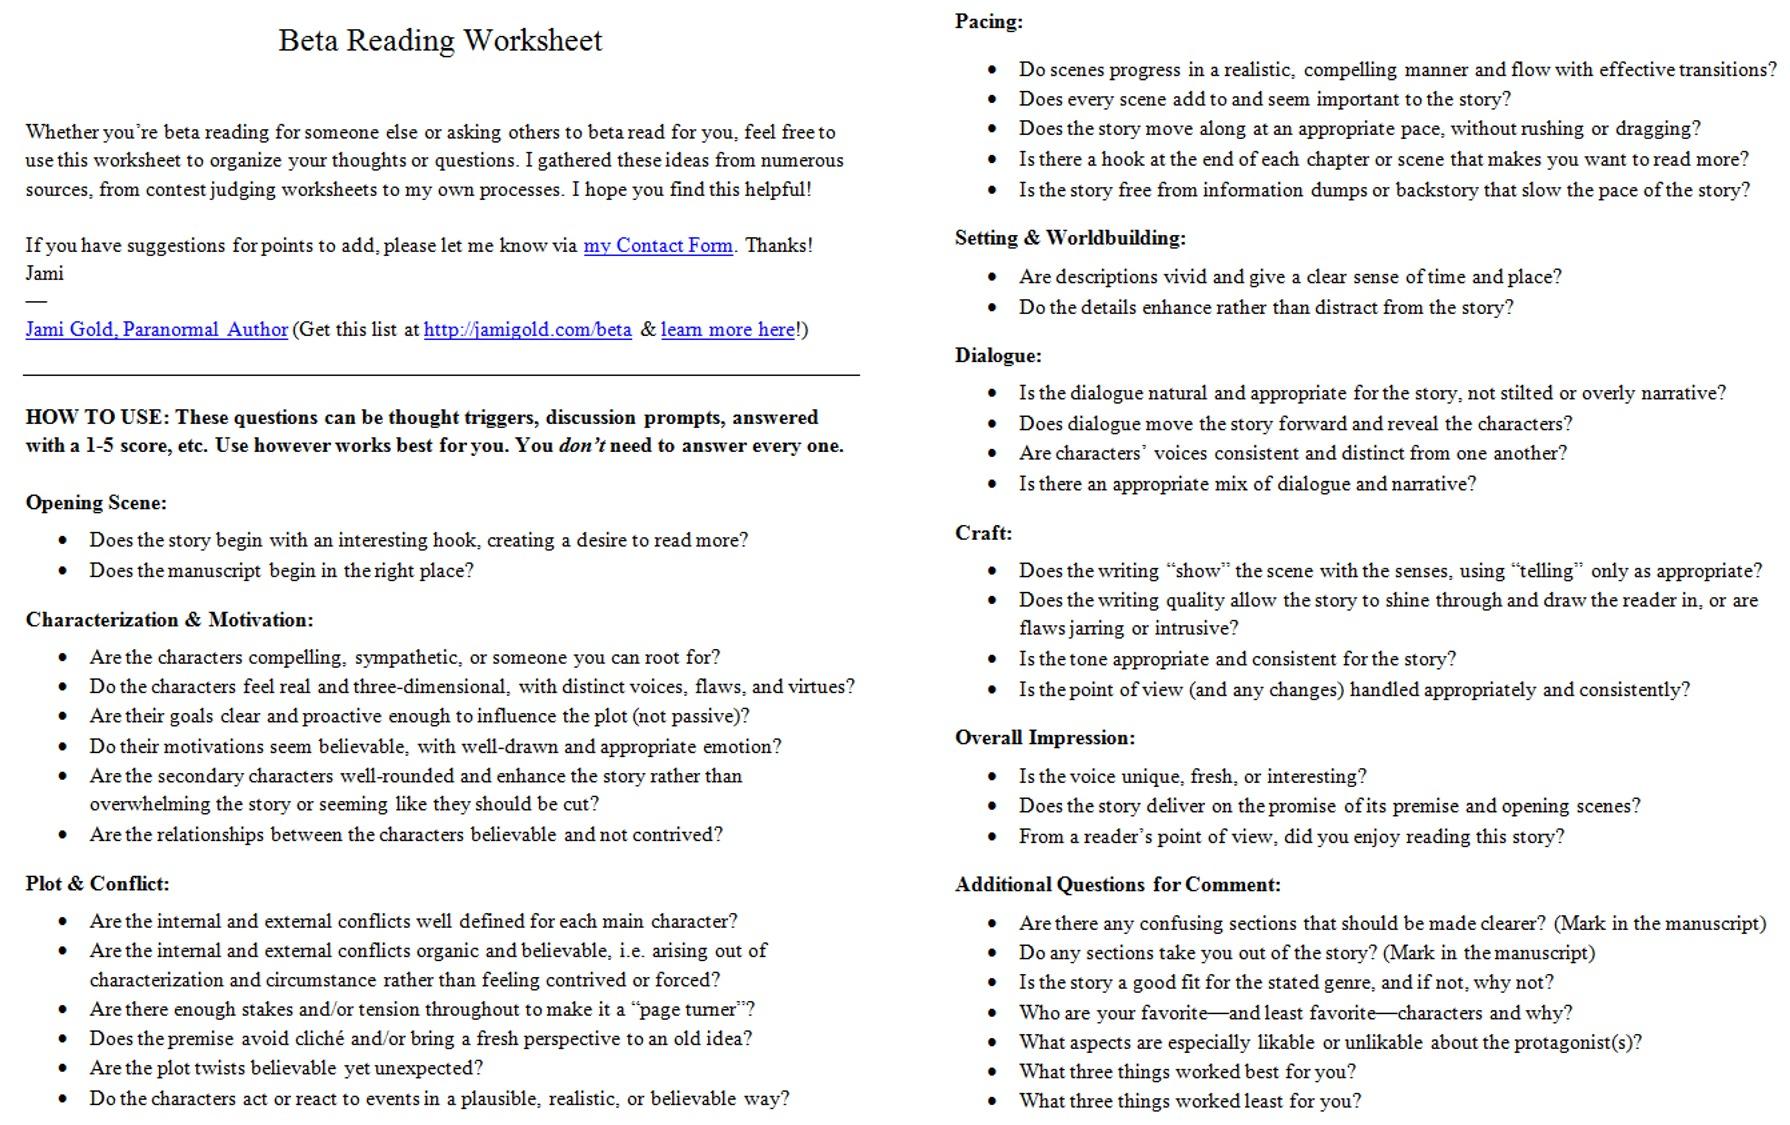 Aldiablosus  Pleasant Worksheets For Writers  Jami Gold Paranormal Author With Outstanding Screen Shot Of The Twopage Beta Reading Worksheet With Astonishing Fact Family Worksheets Grade  Also Ks Maths Worksheets In Addition Social Studies For Kids Worksheets And Adjectives Worksheets Free As Well As Word Play Worksheets Additionally Reduce To Lowest Terms Worksheet From Jamigoldcom With Aldiablosus  Outstanding Worksheets For Writers  Jami Gold Paranormal Author With Astonishing Screen Shot Of The Twopage Beta Reading Worksheet And Pleasant Fact Family Worksheets Grade  Also Ks Maths Worksheets In Addition Social Studies For Kids Worksheets From Jamigoldcom